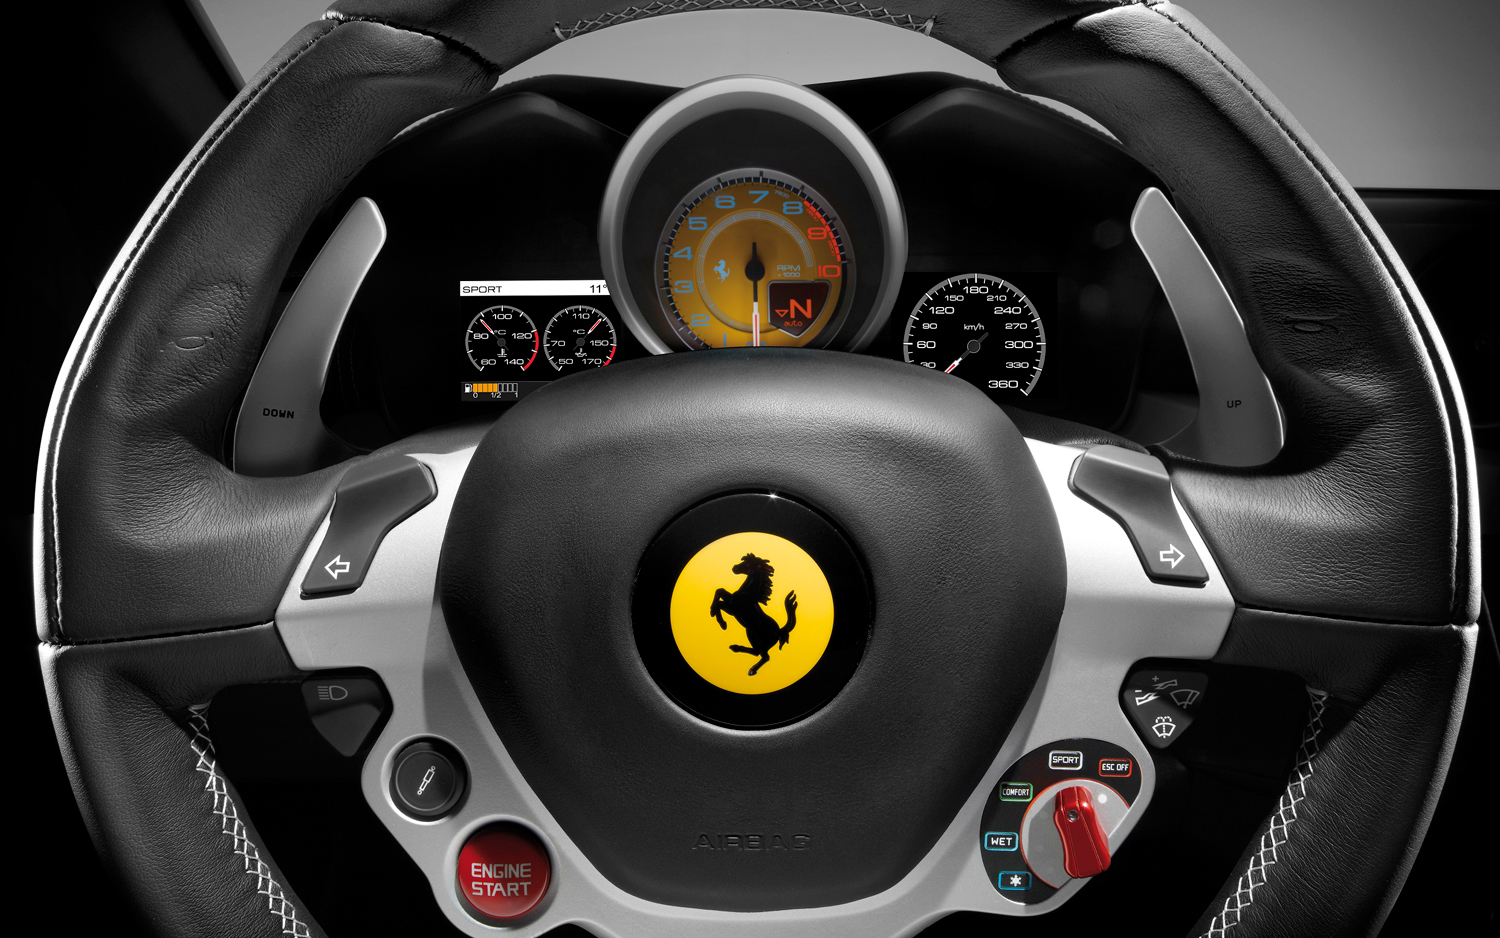 12 Photos That Will Make You Fall in Love With Ferrari Friday